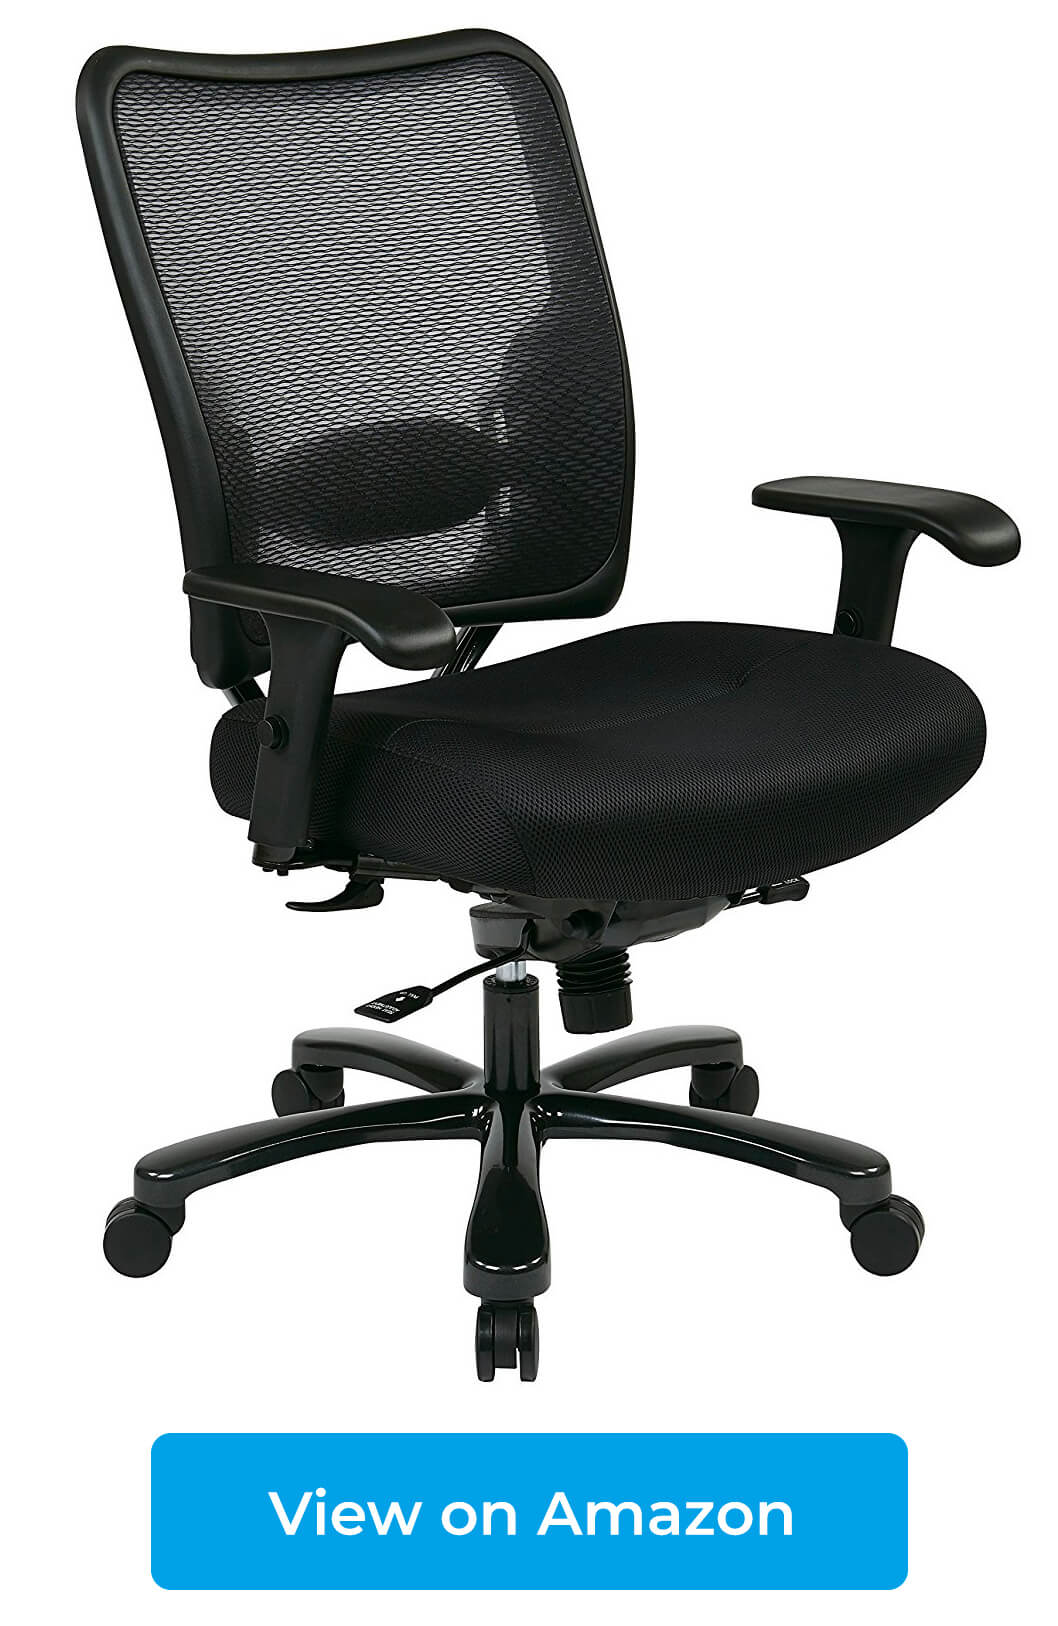 Space Seating Office Chair is great high-quality Herman Miller Aeron alternative